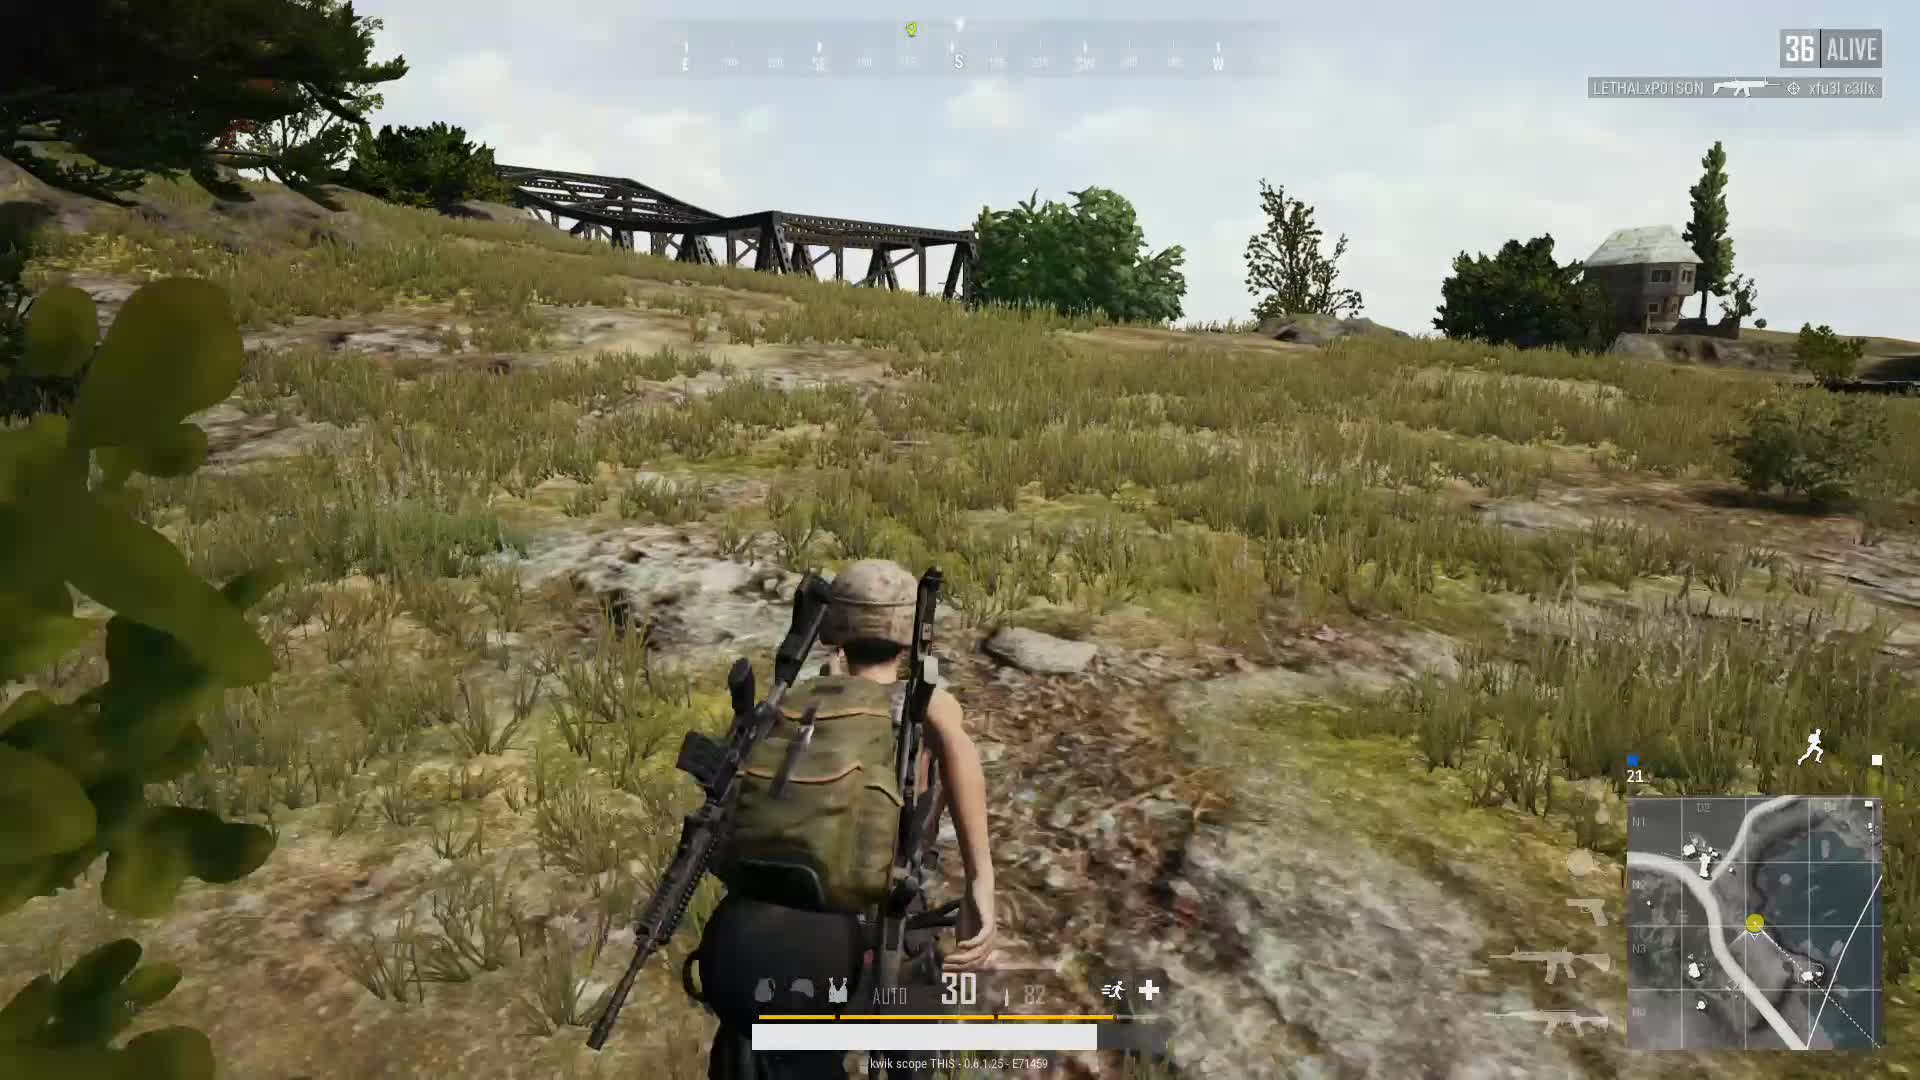 PLAYERUNKNOWNSBATTLEGROUNDS, kwik scope THIS, xbox, xbox dvr, xbox one, Satisfying GIFs